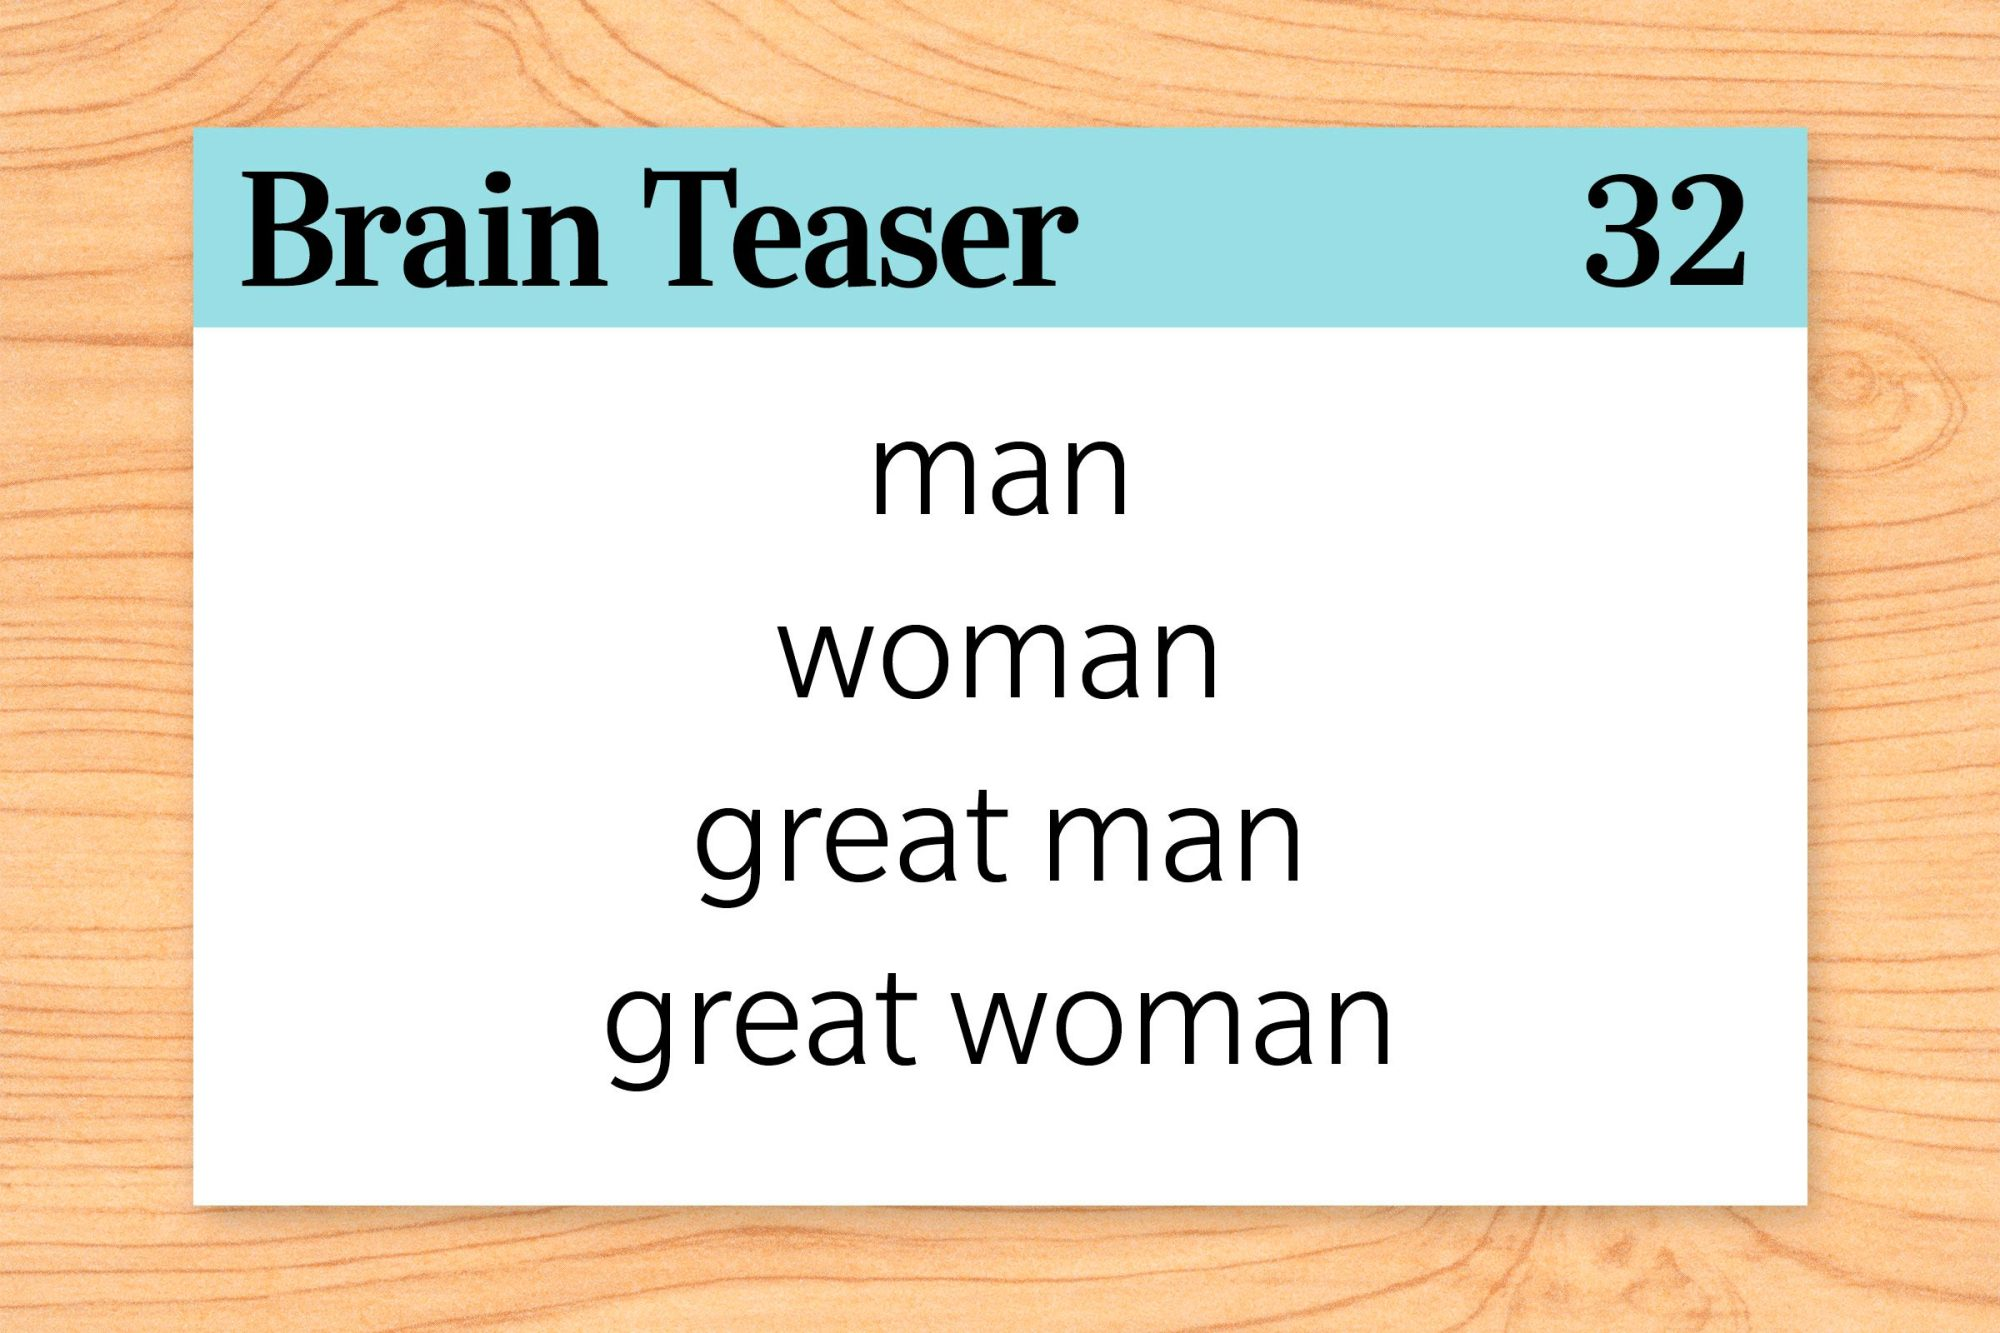 hight resolution of 56 Brain Teasers That Will Leave You Stumped   Reader's Digest